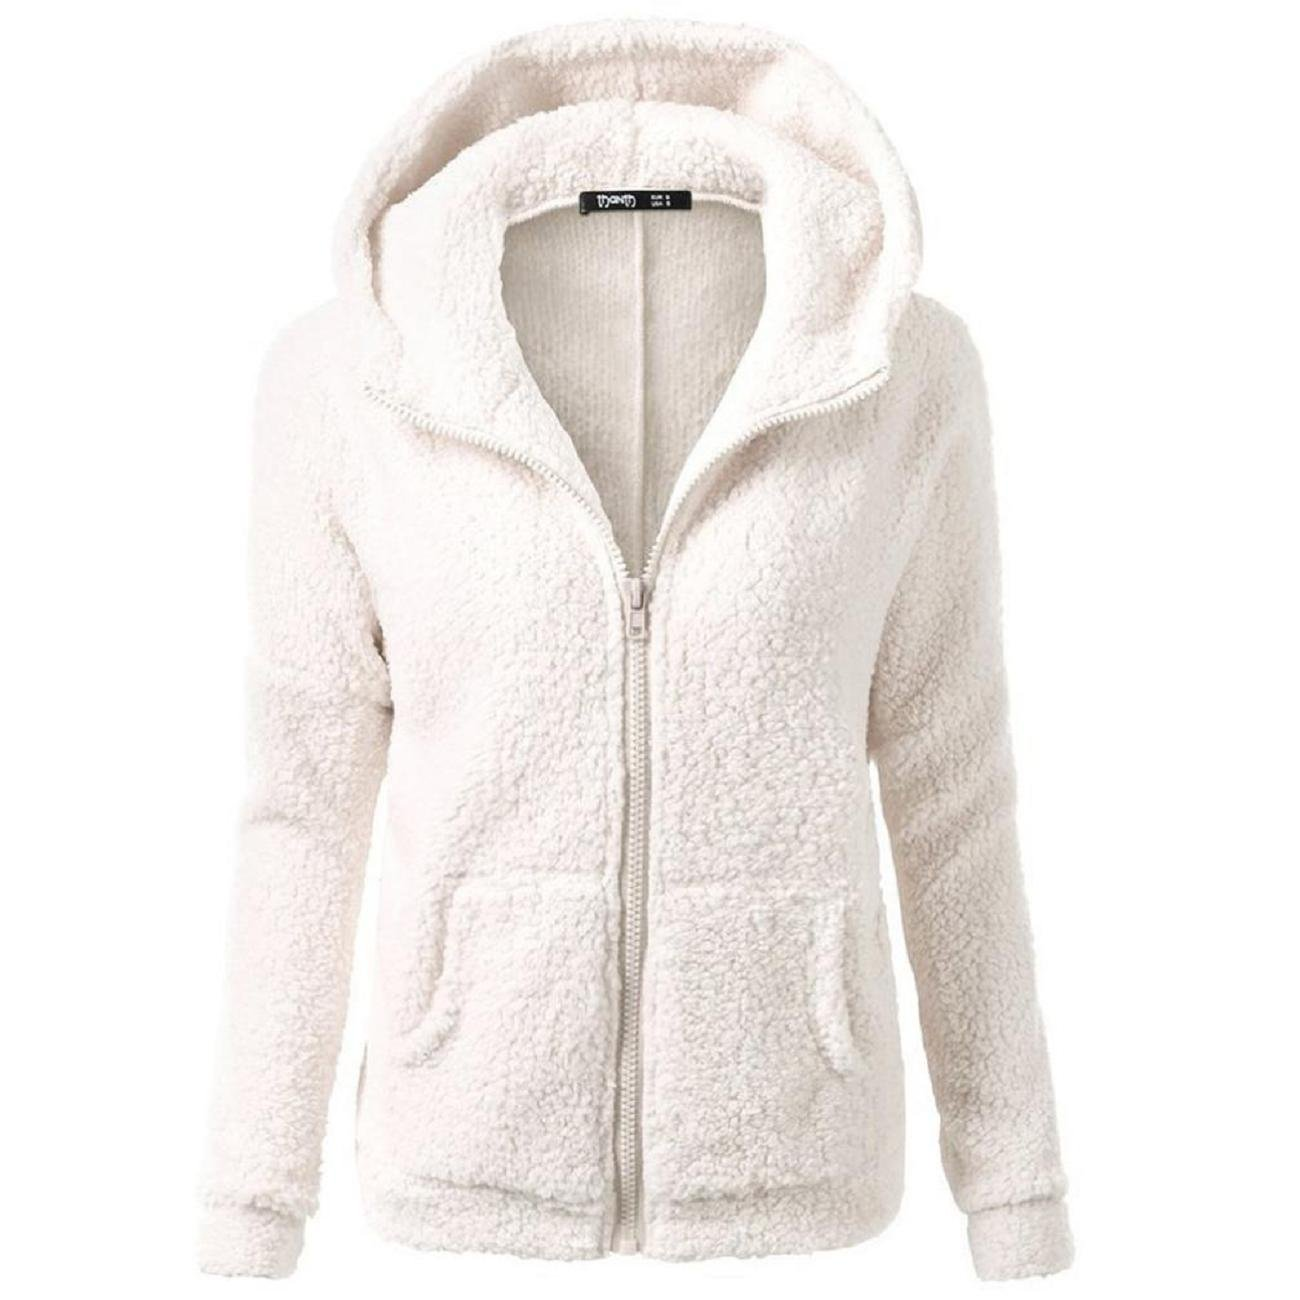 WILLTOO Winter Super Warm Coat Fur Collar Cotton Hooded Sweater Zipper Jacket Parka Stylish Outwear Oversize S-5XL (White, L)